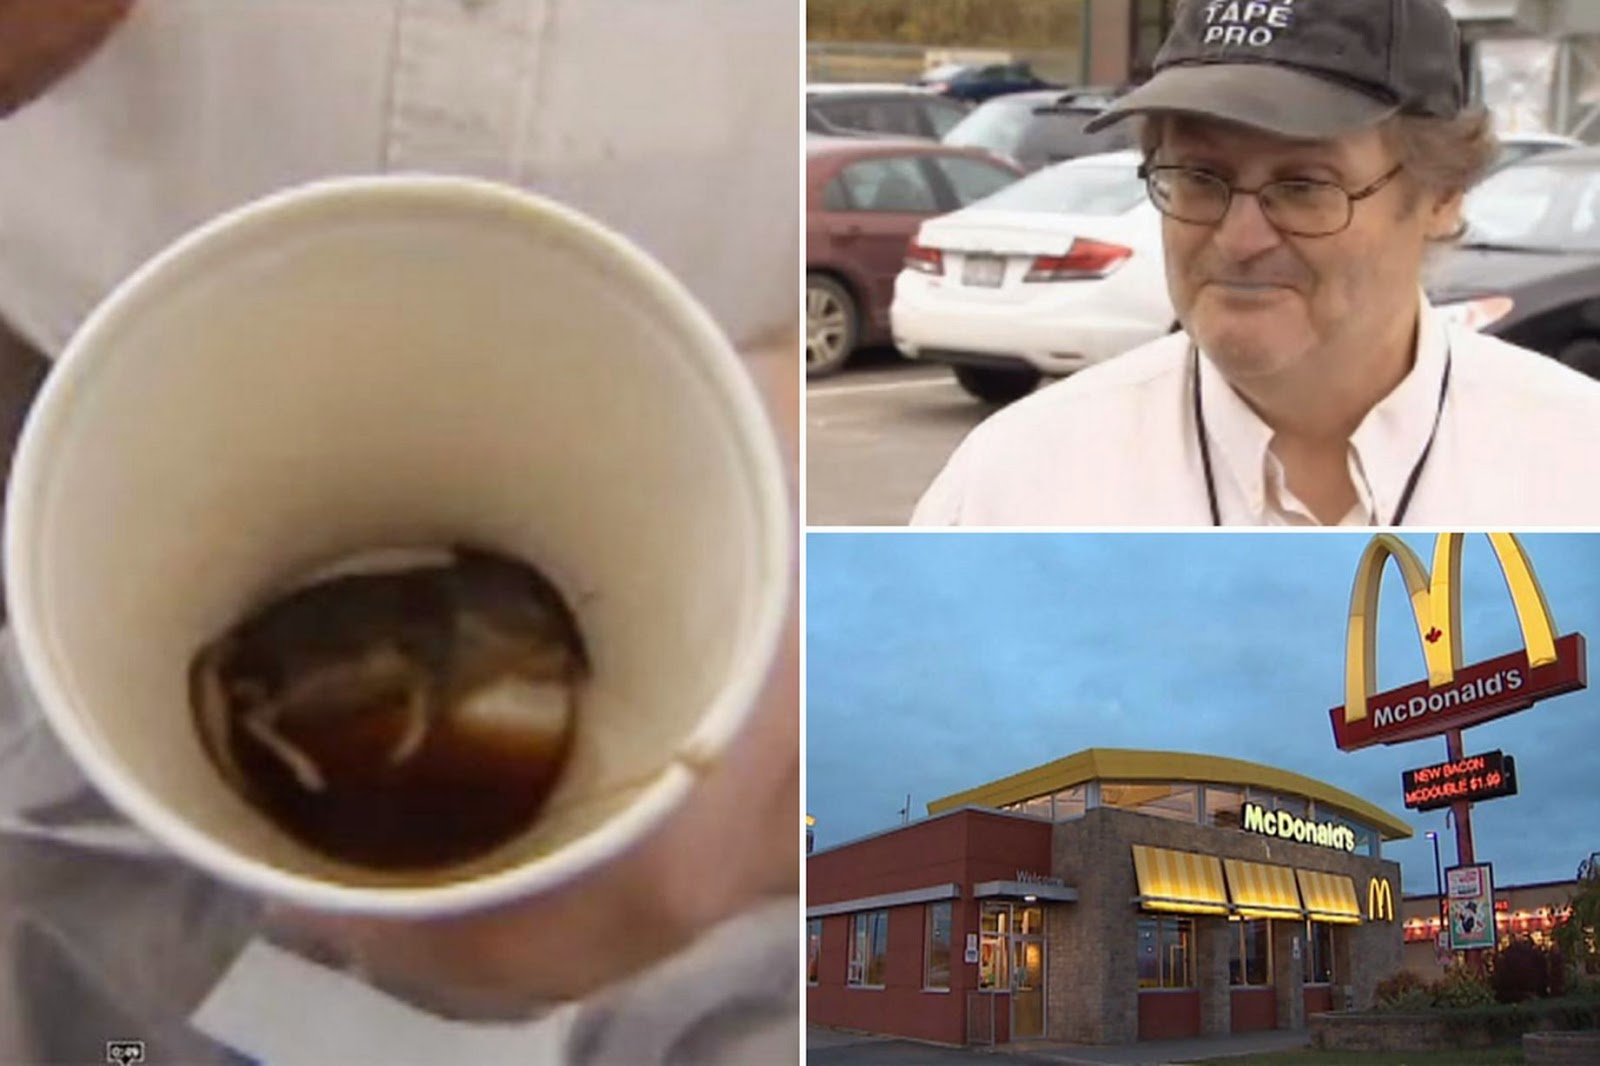 Man 'Finds' Dead Mouse In His McDonald's Coffee